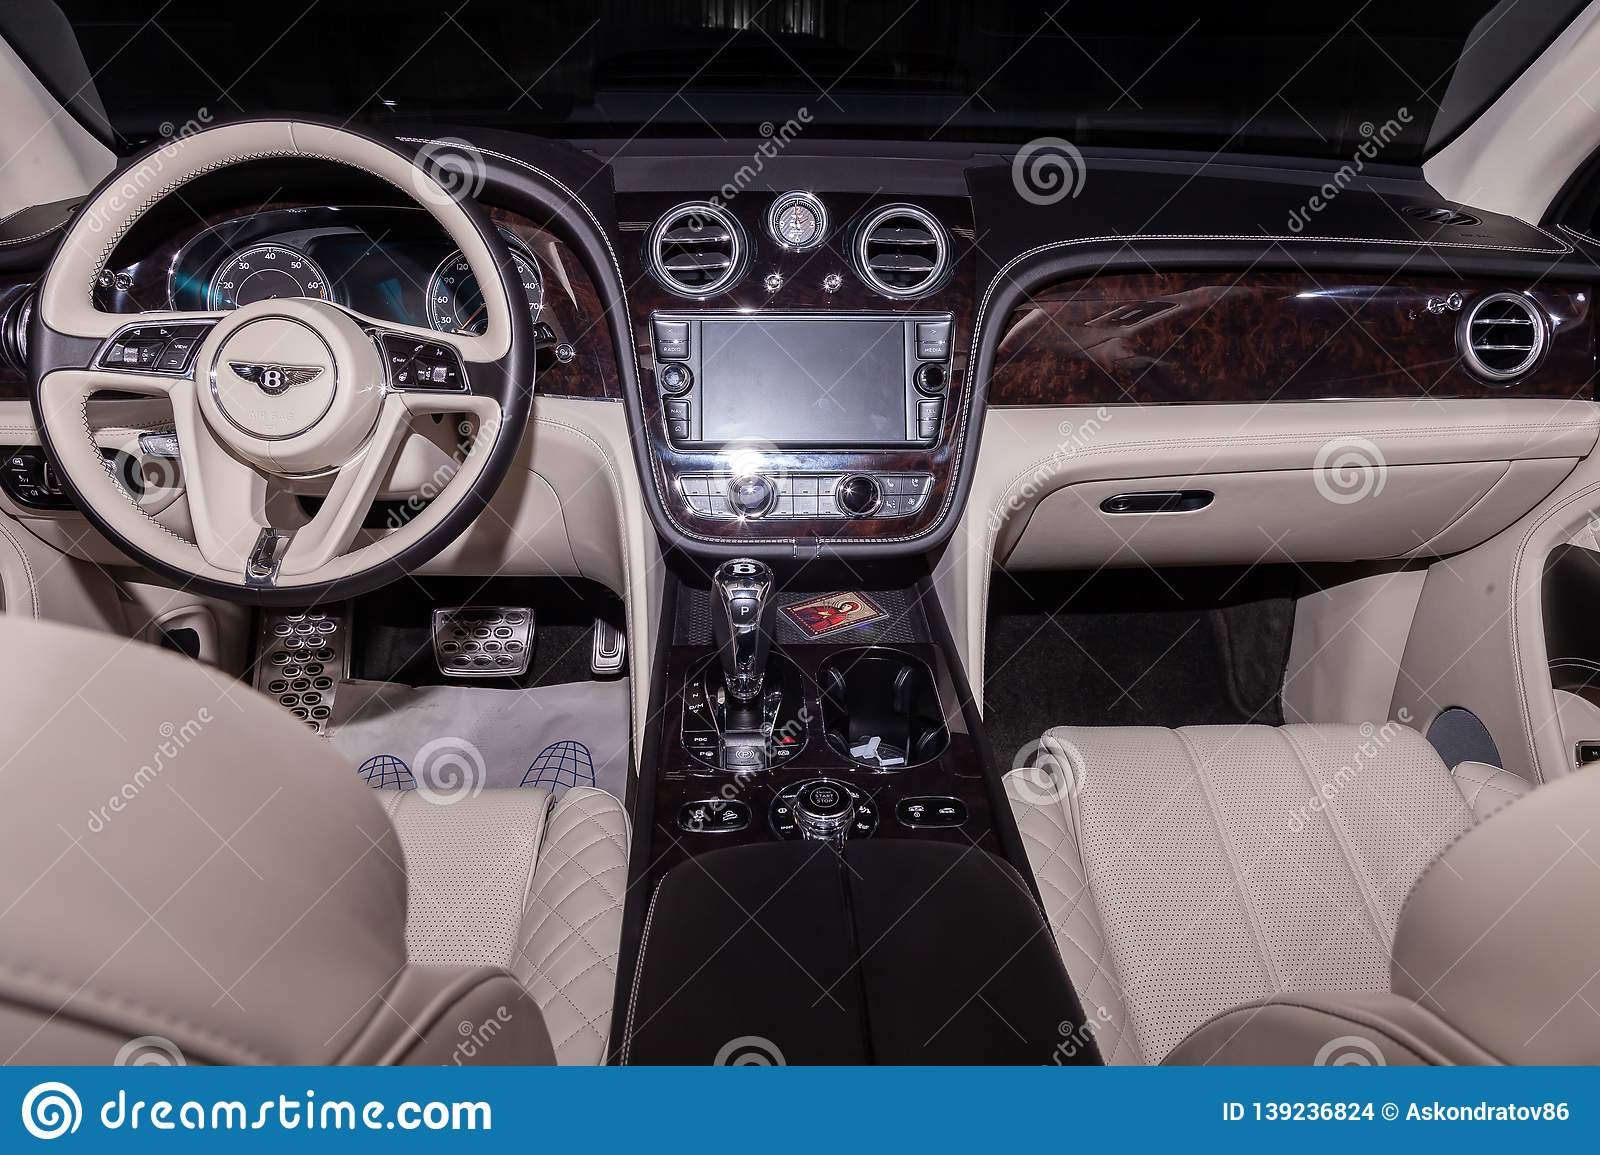 Interior View Of Luxury Very Expensive New Black Bentley Bentay Car Stands In The Washing Box Waiting For Repair In Auto Editorial Stock Image Image Of Manufacturer Gauge 139236824